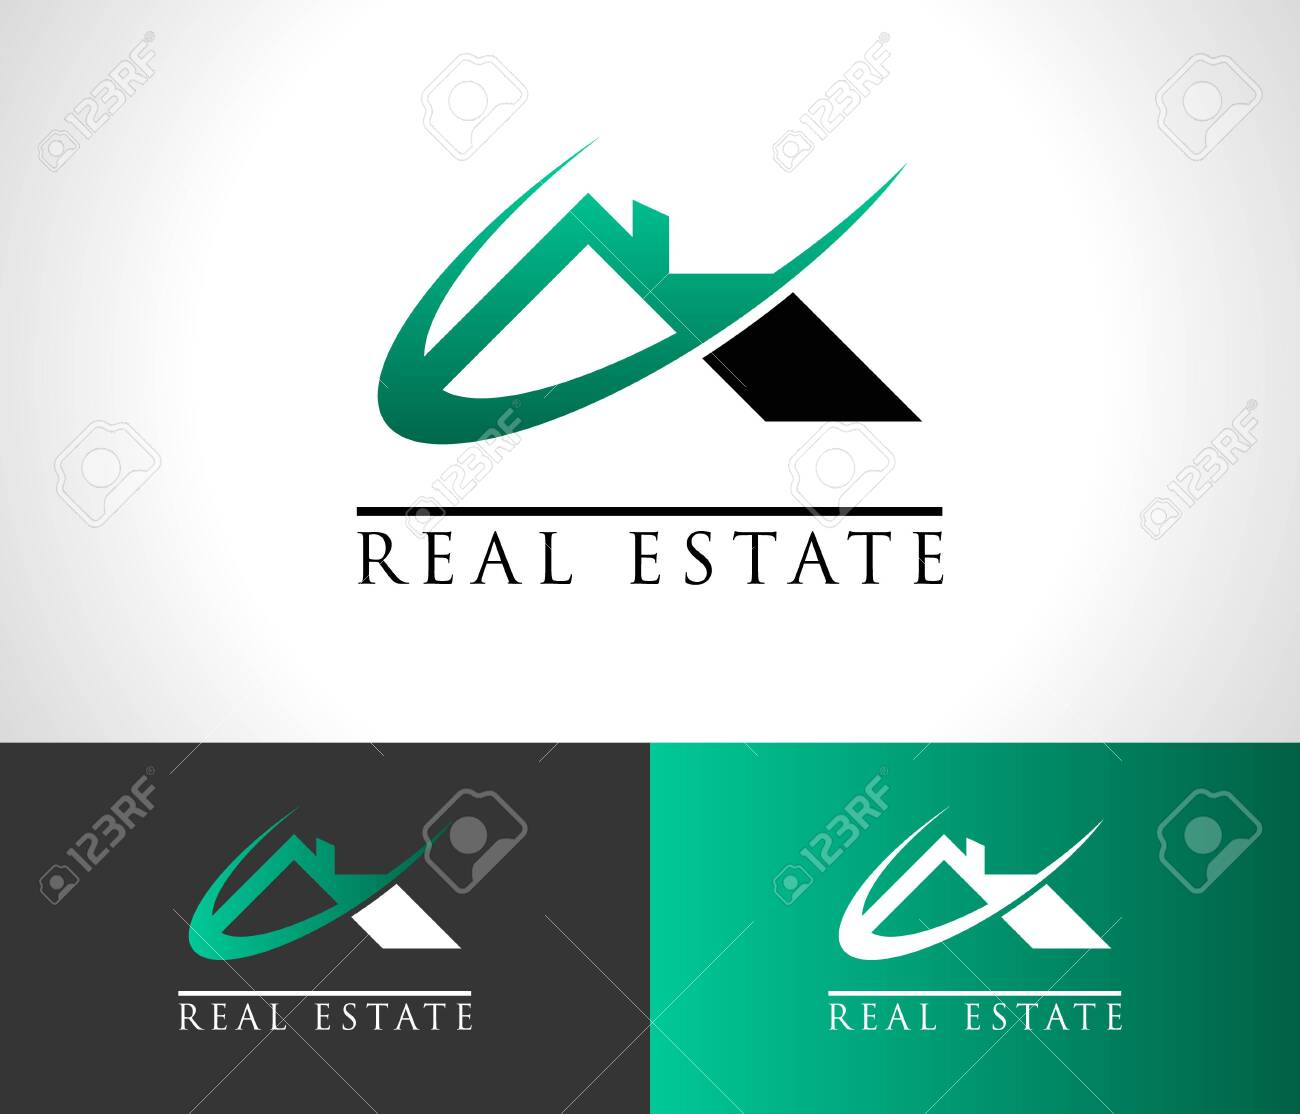 Real Estate House Roof Icon - 135689242